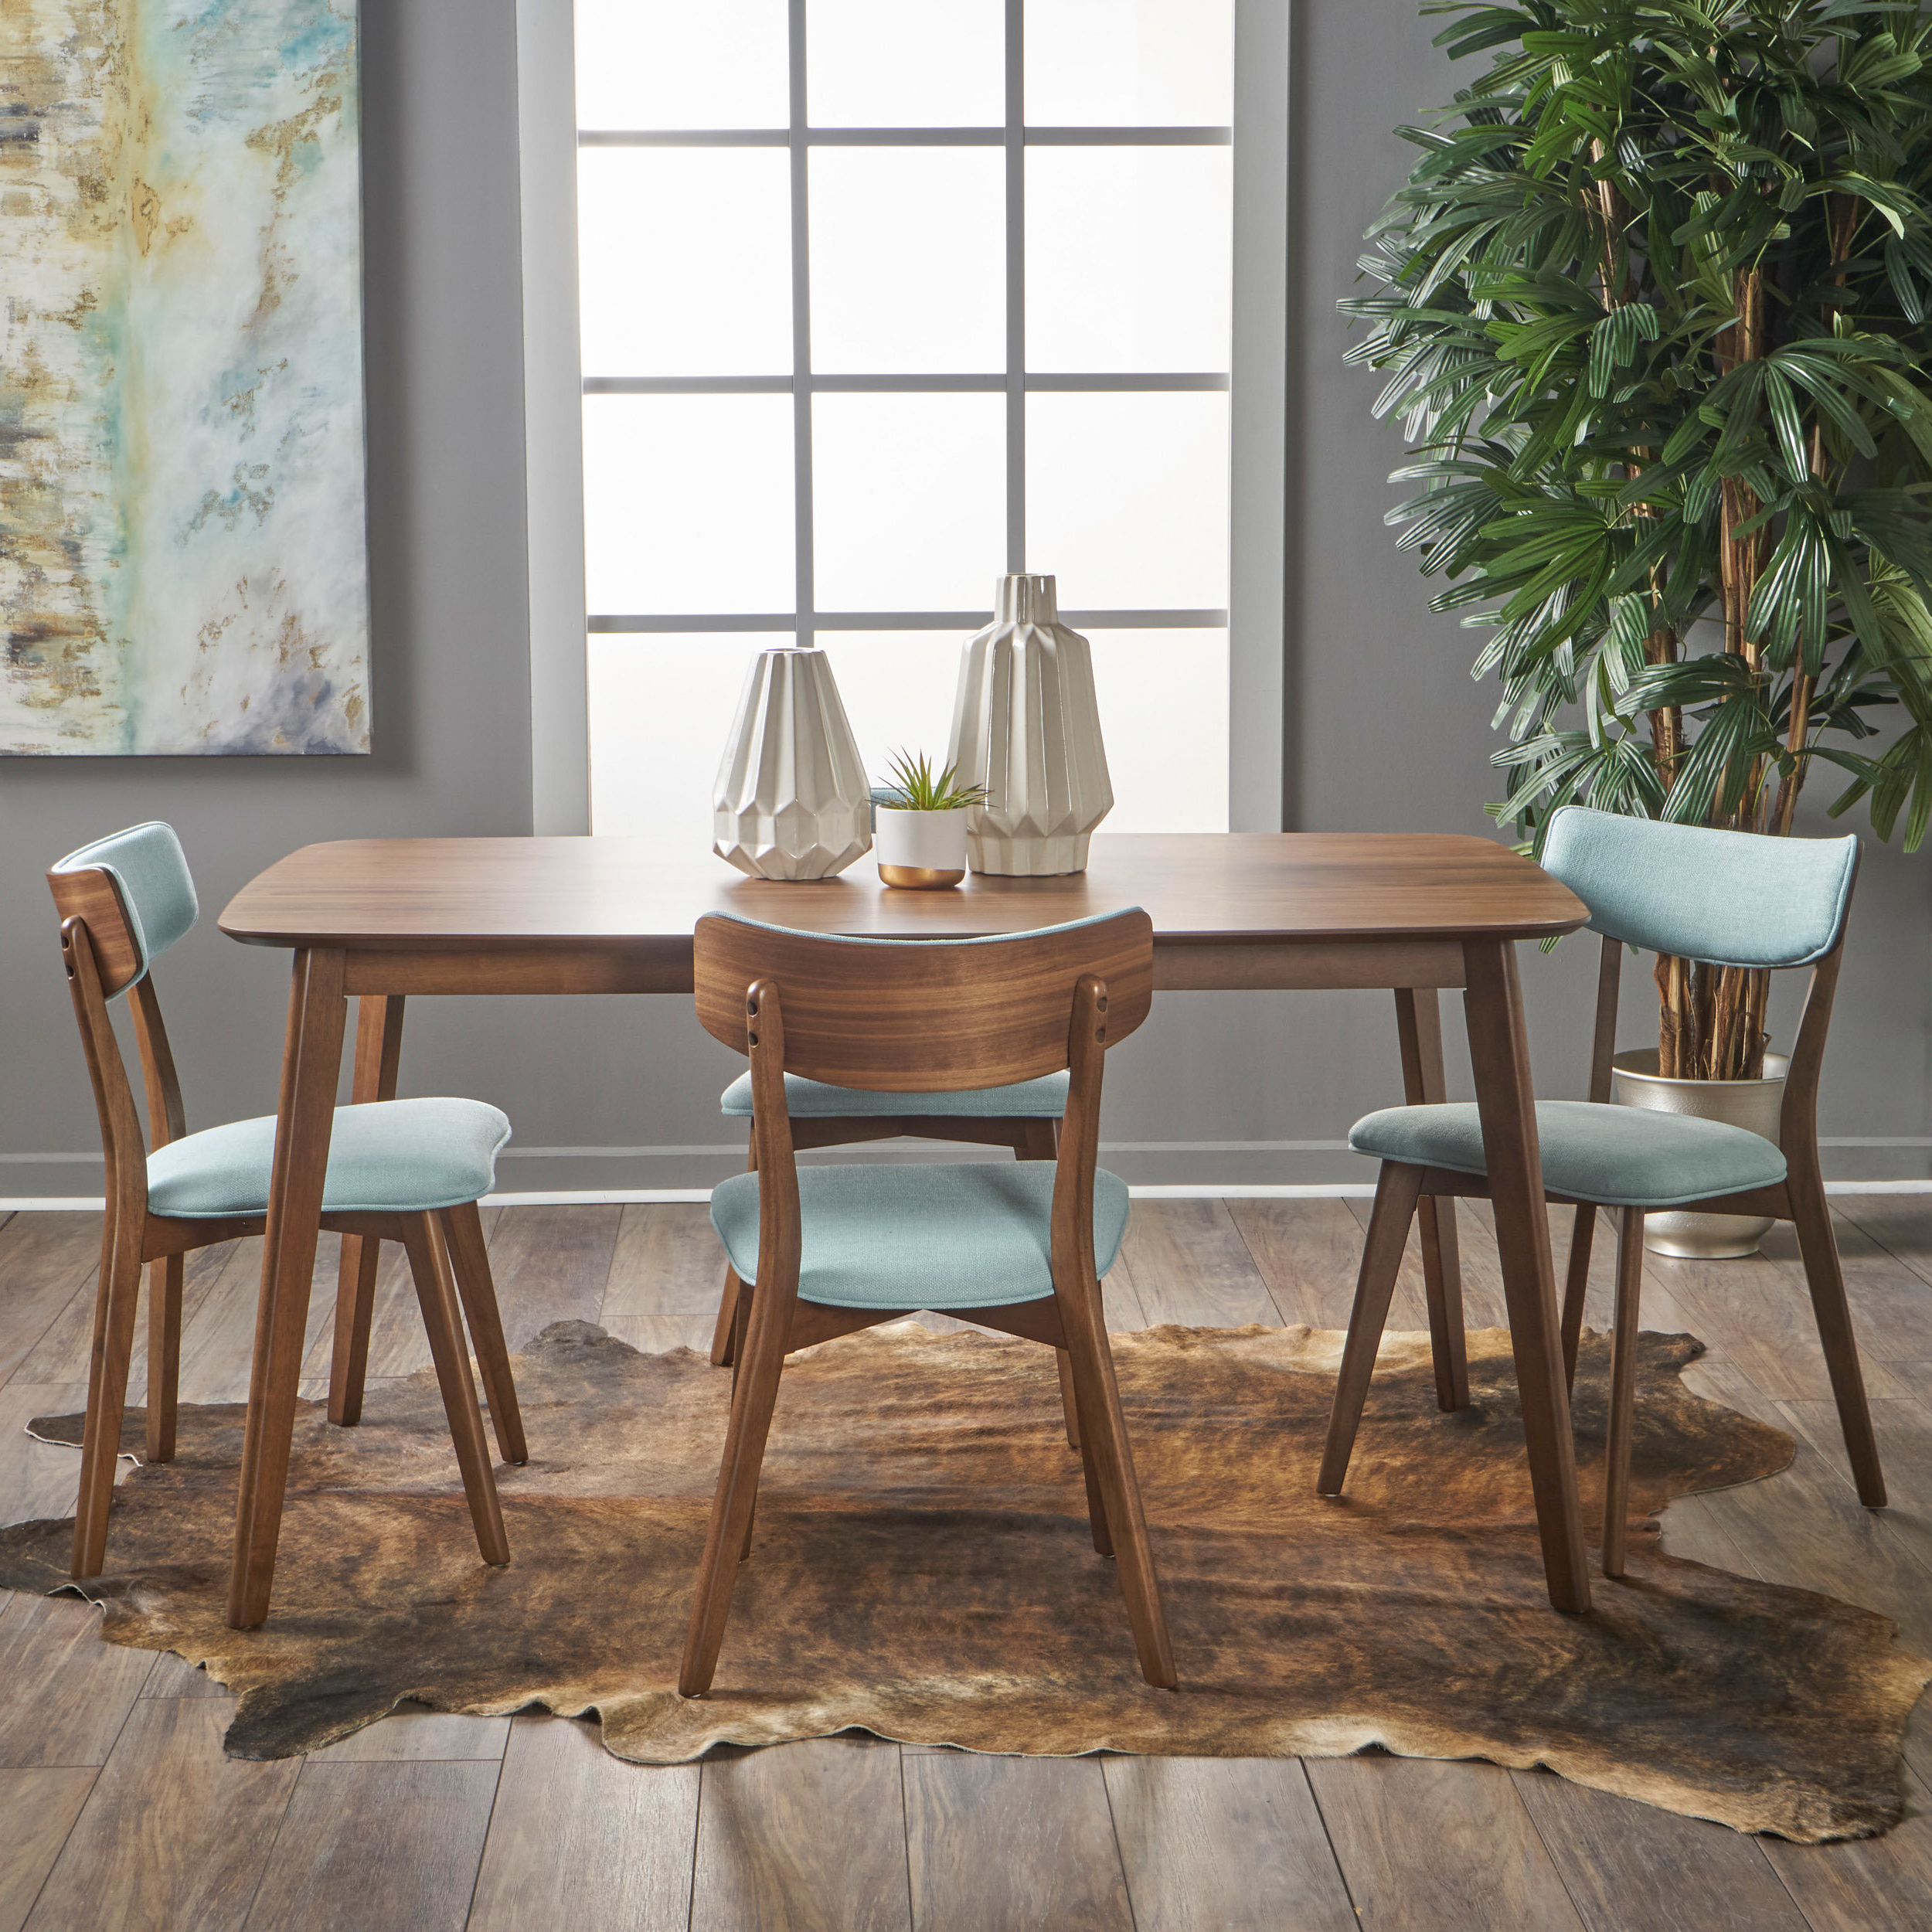 Allmodern Throughout Most Popular Liles 5 Piece Breakfast Nook Dining Sets (Gallery 9 of 20)